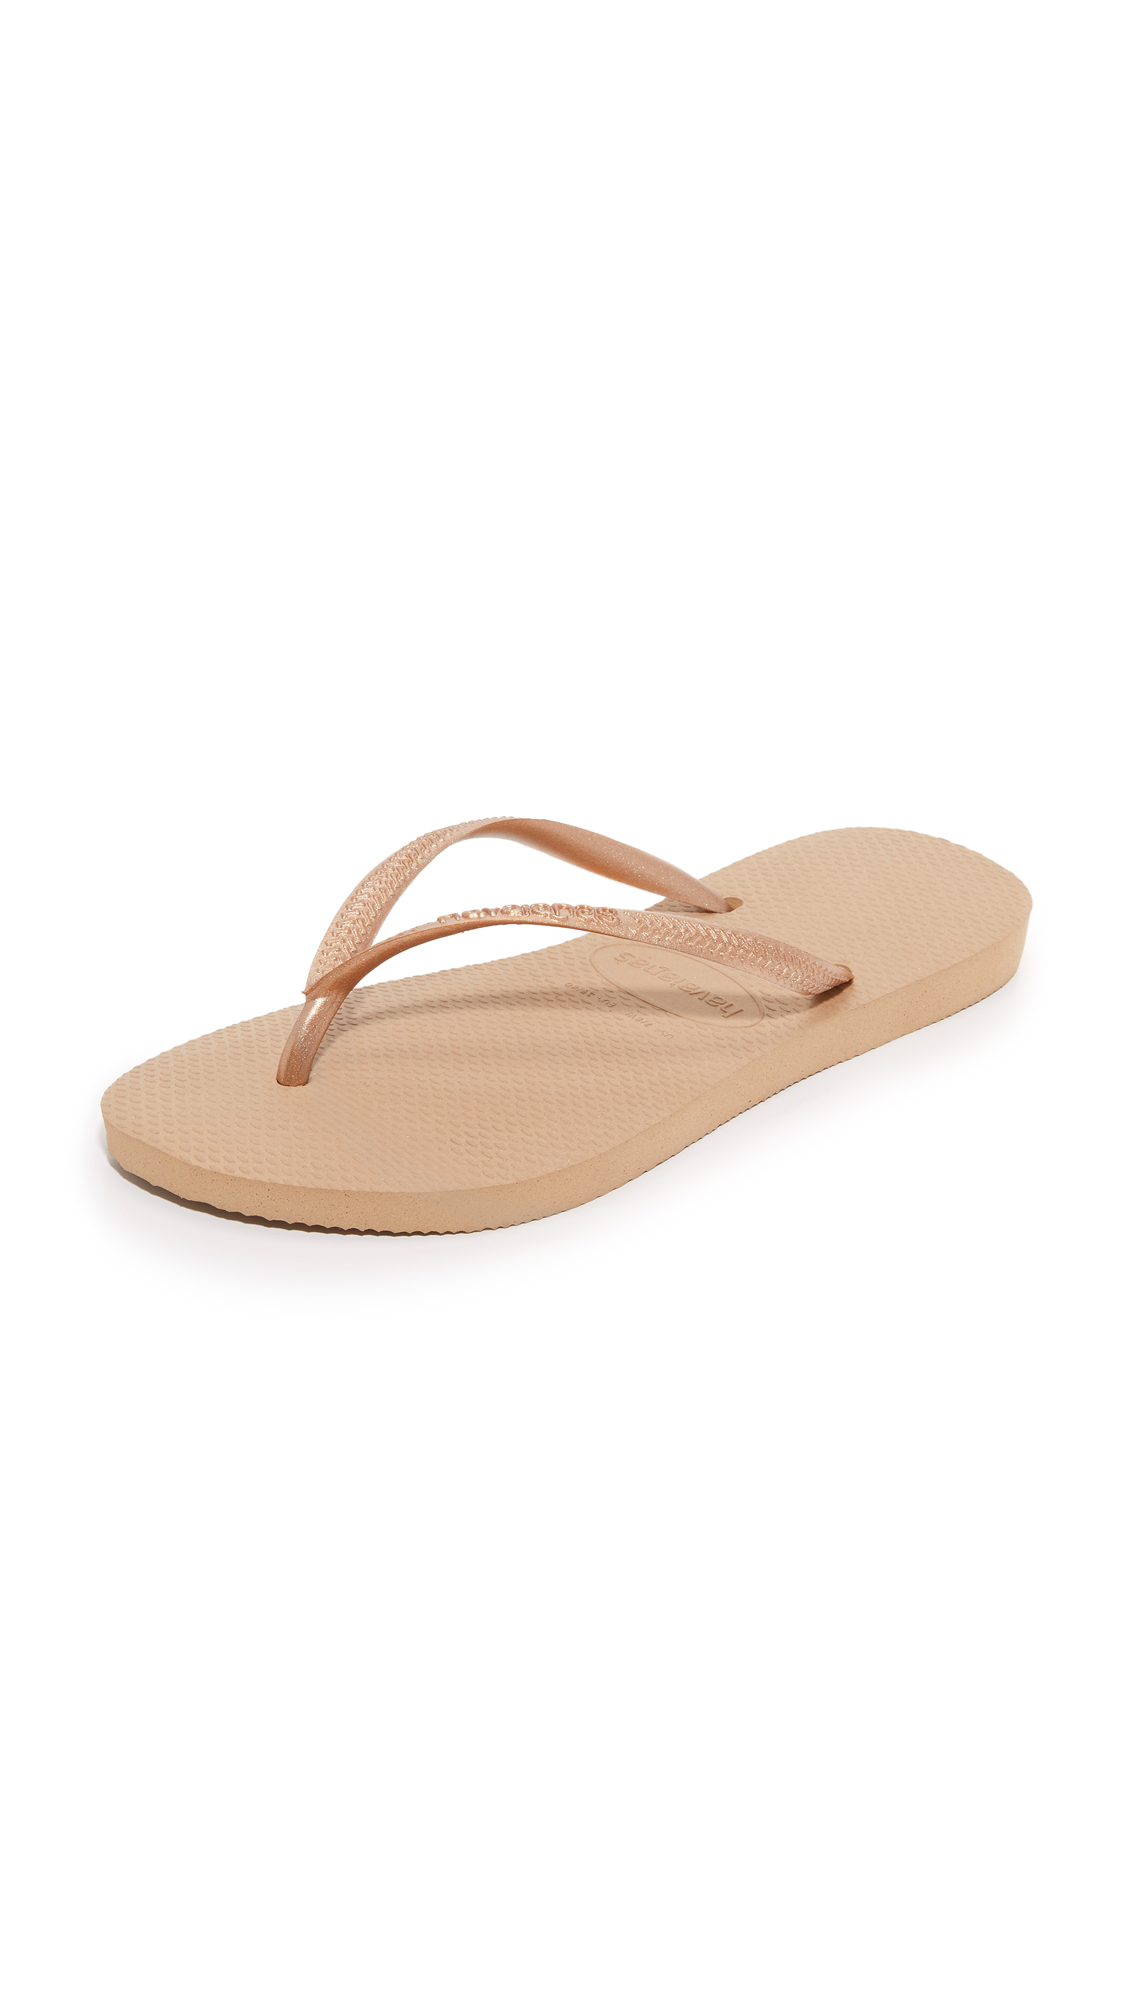 havaianas female 255807 havaianas slim flip flops rose gold